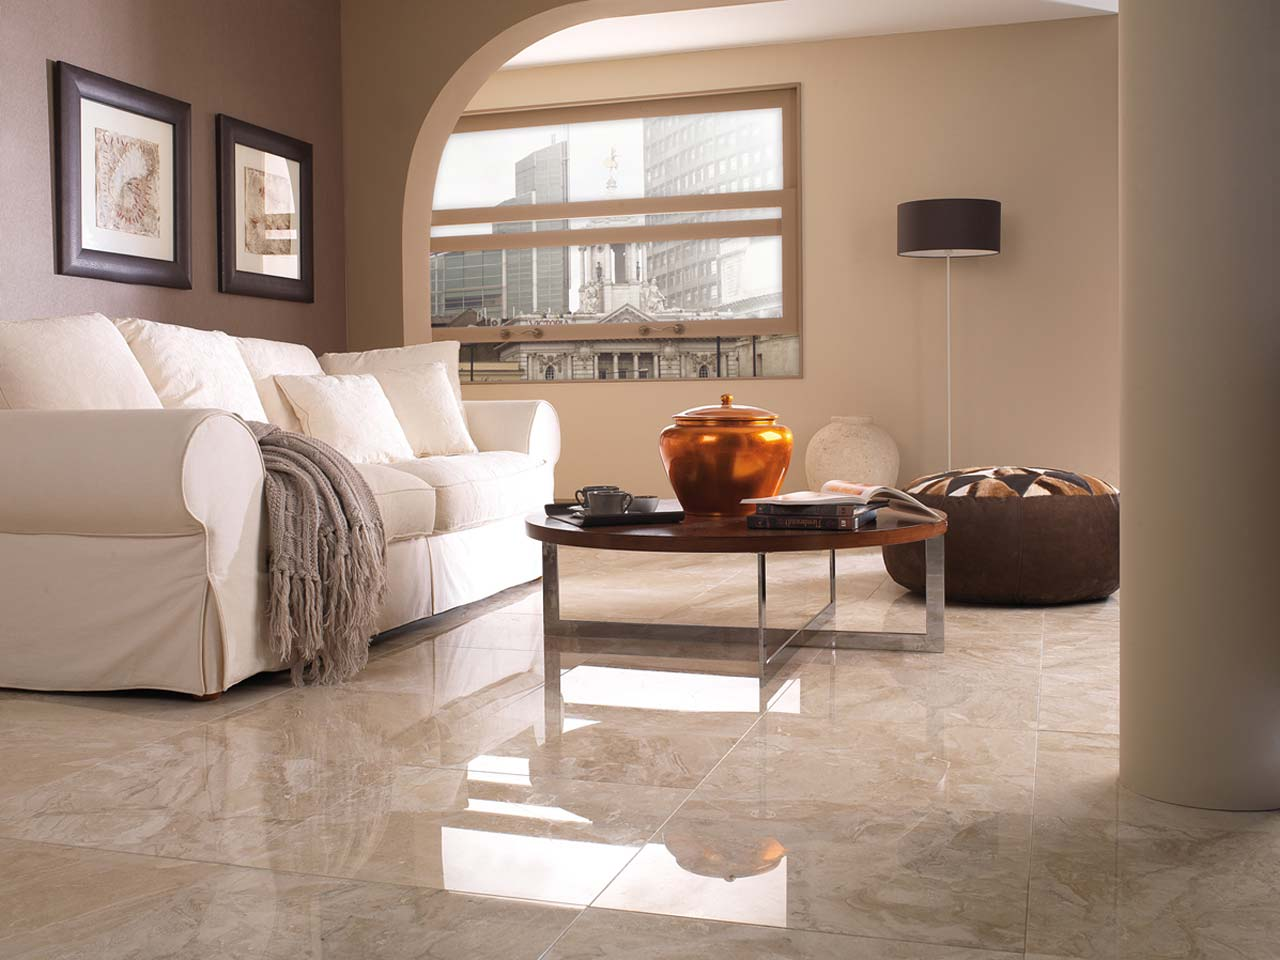 How To Clean And Polish Marble Floors